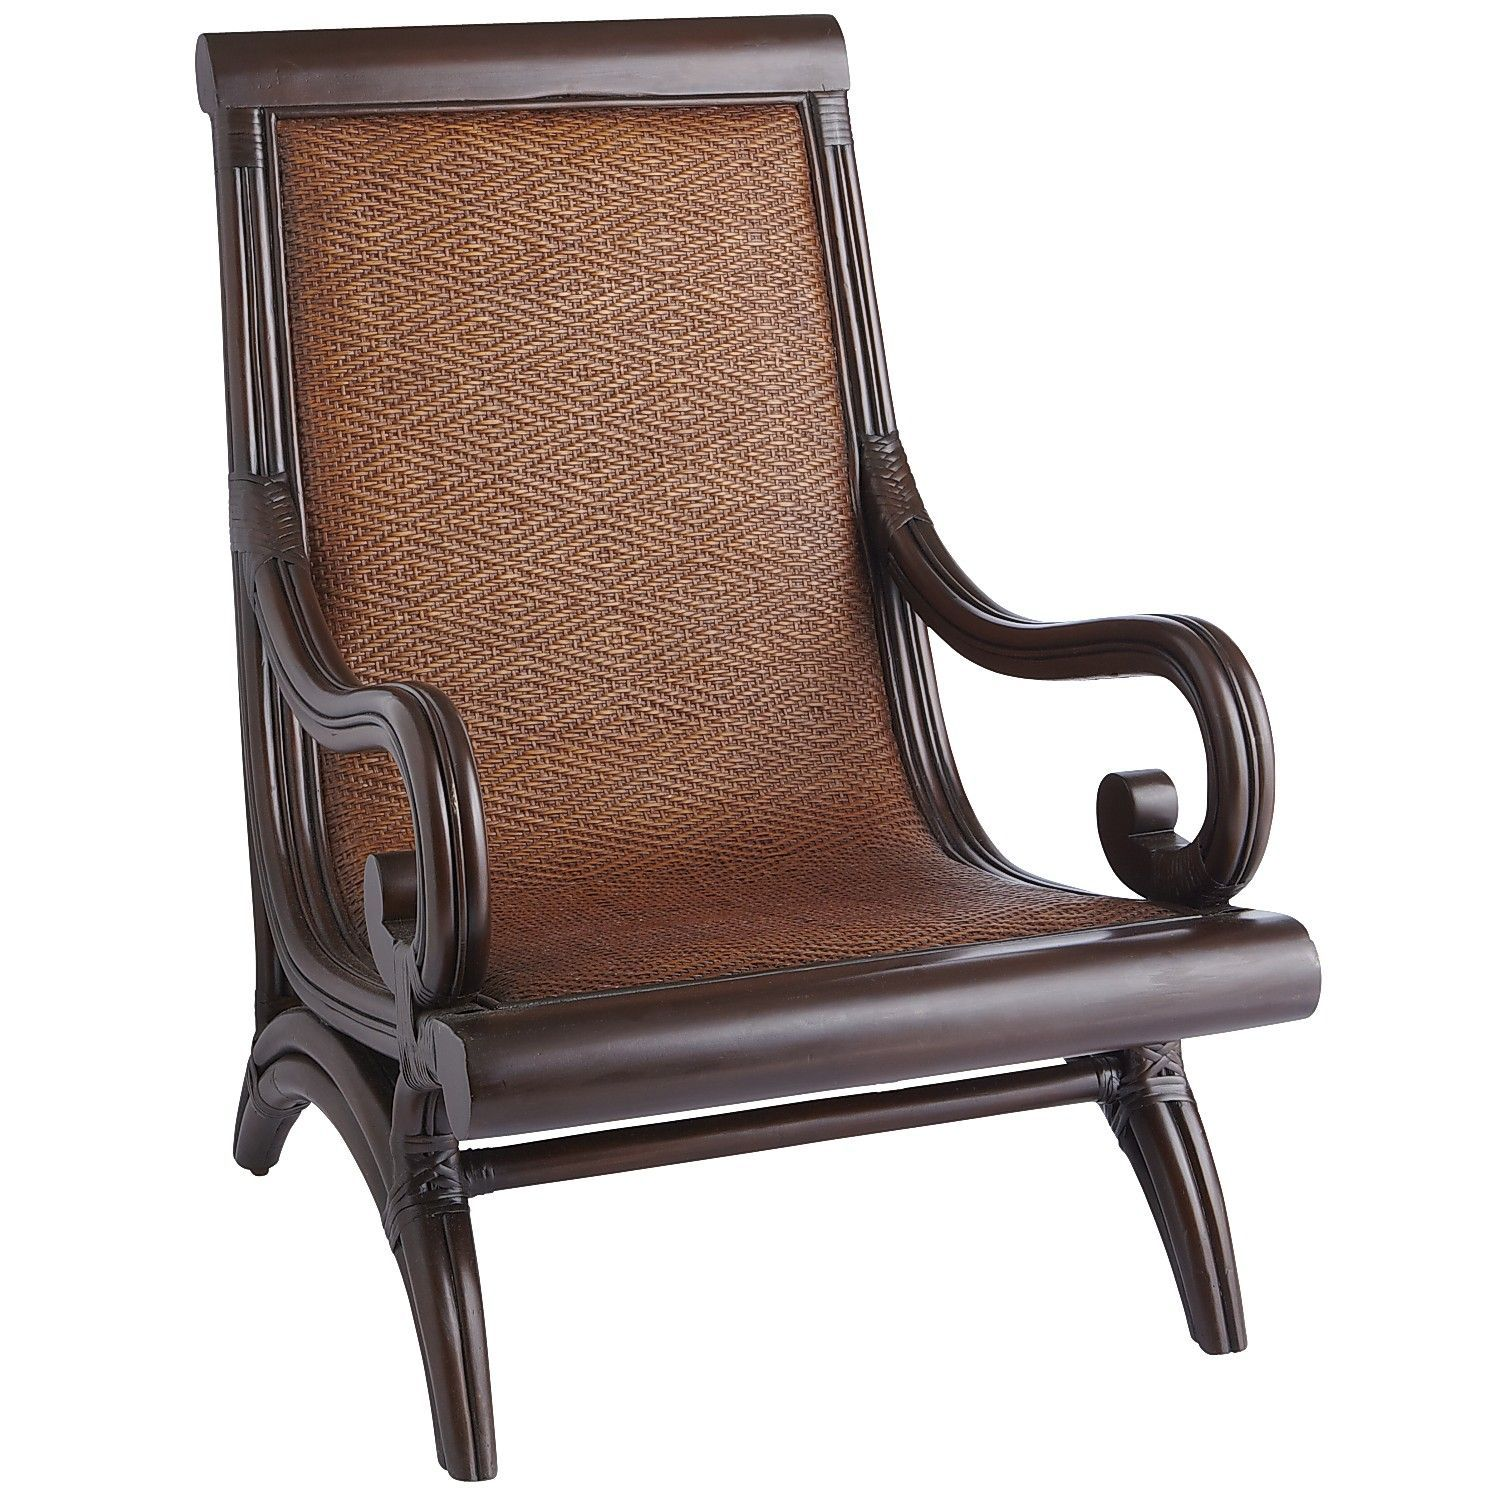 Cebu Plantation Chair Global Homewares Plantation